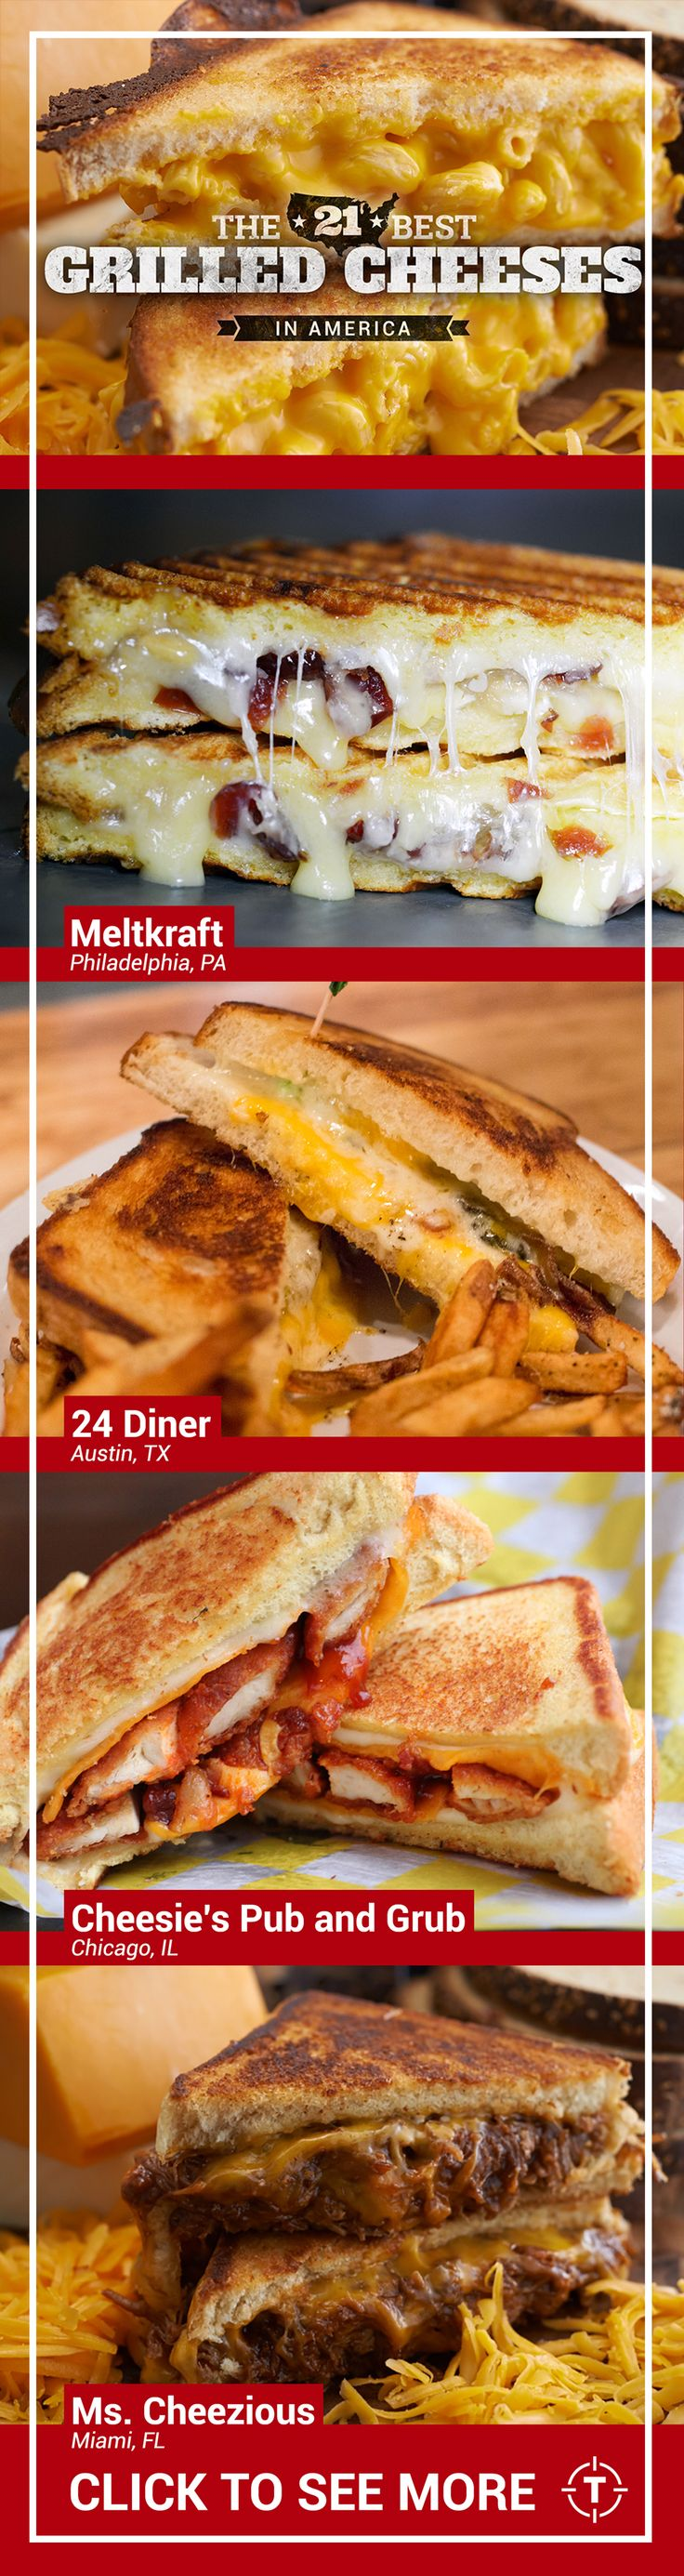 "And no, your mom's ""almost famous"" grilled cheese didn't make the list. Sorry."